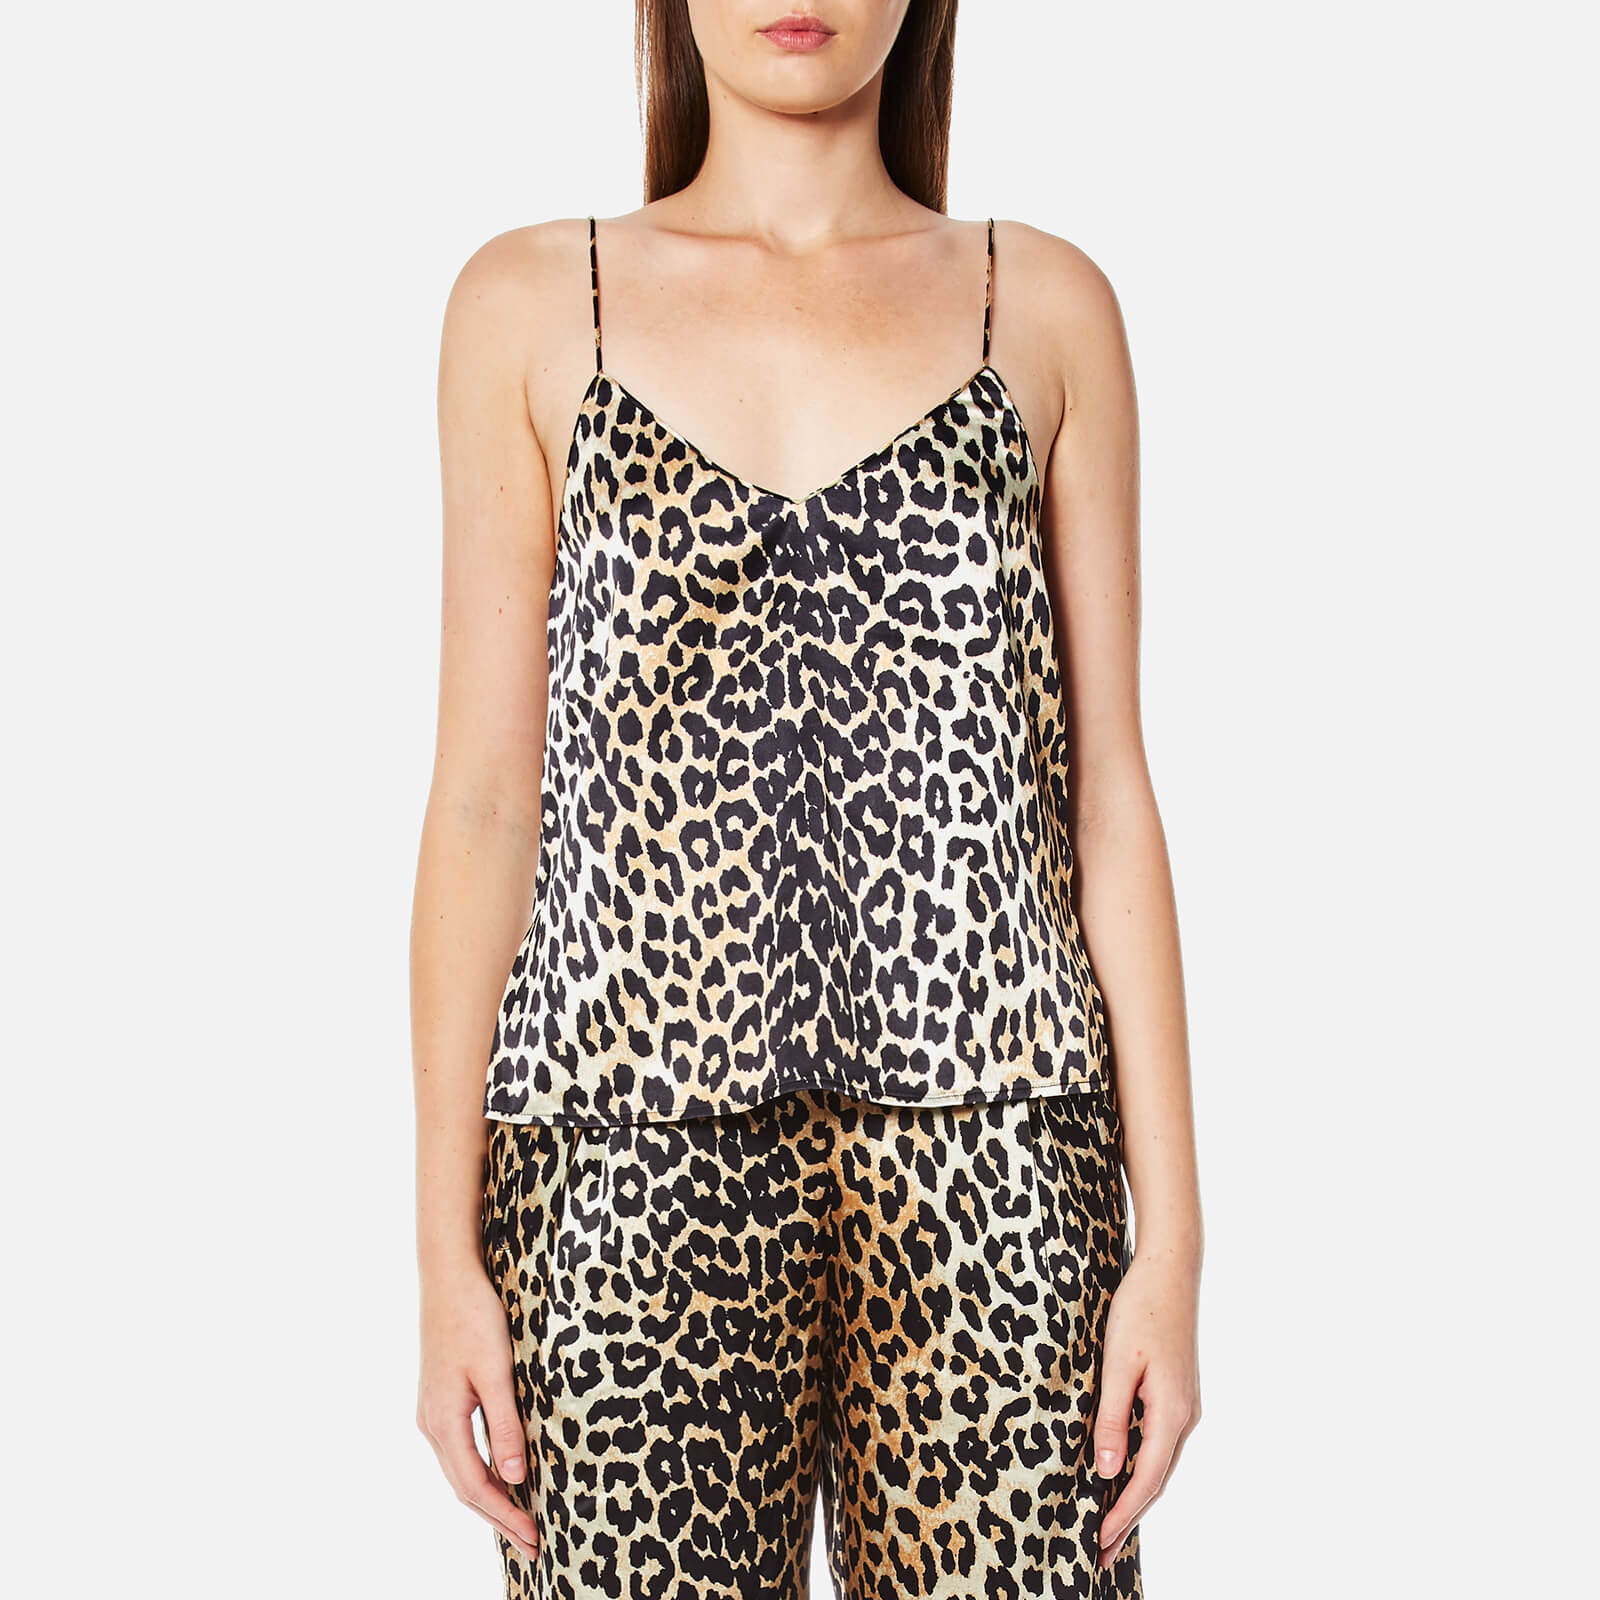 55281b068ccb Ganni Women's Dufort Silk Top - Leopard - Free UK Delivery over £50